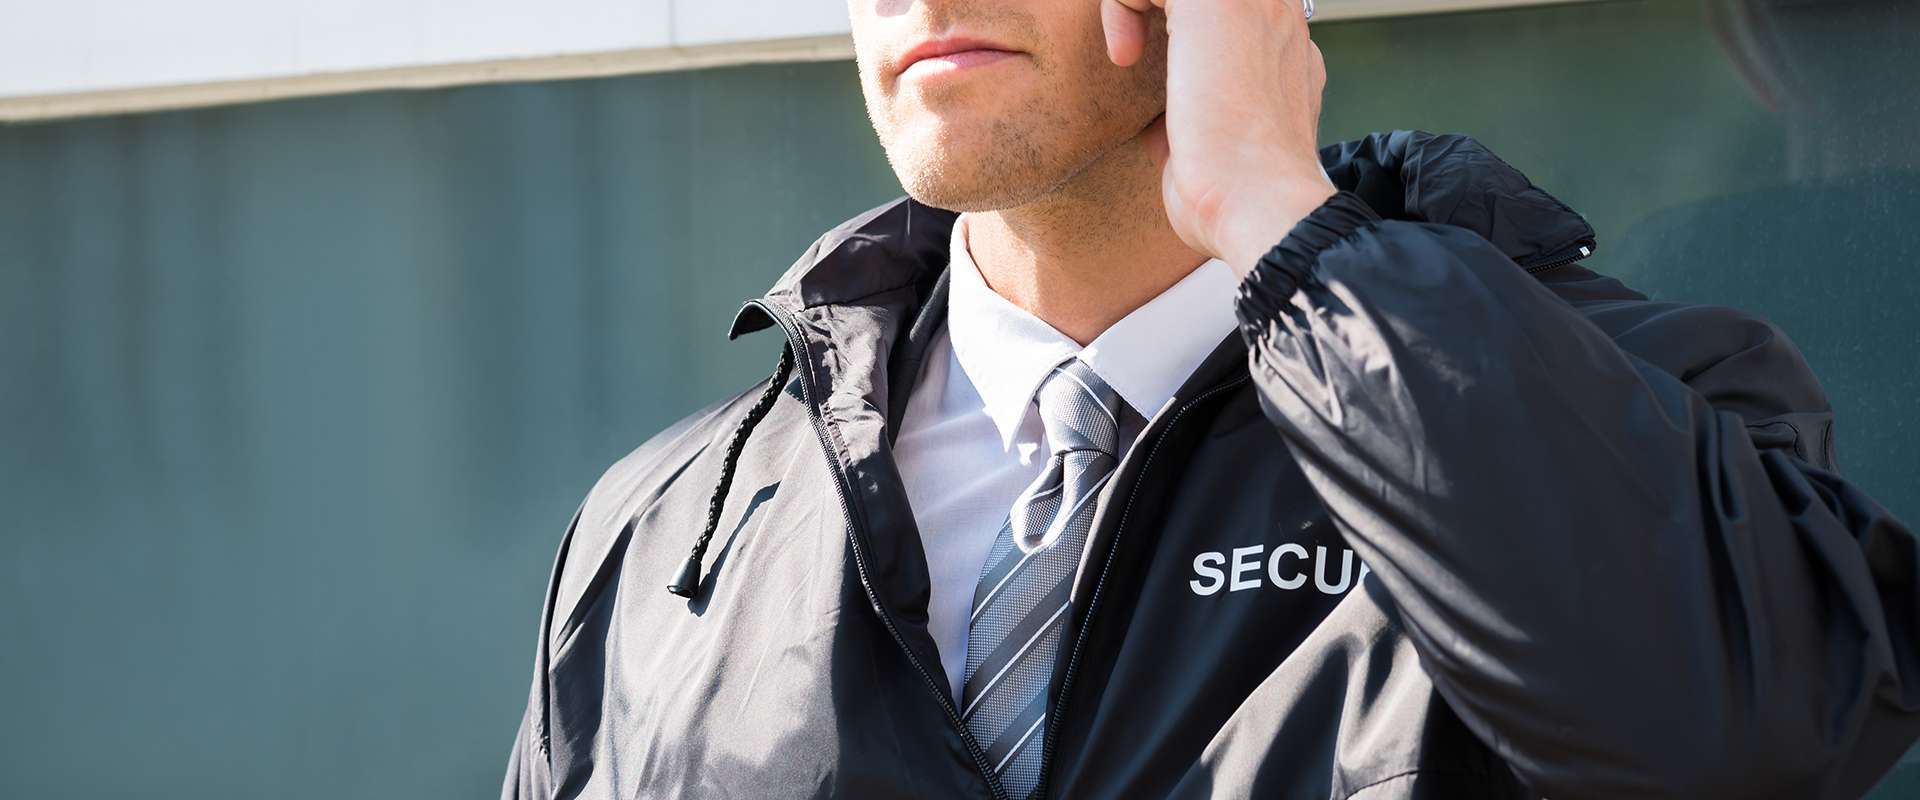 Residential, Business & Event Security Services